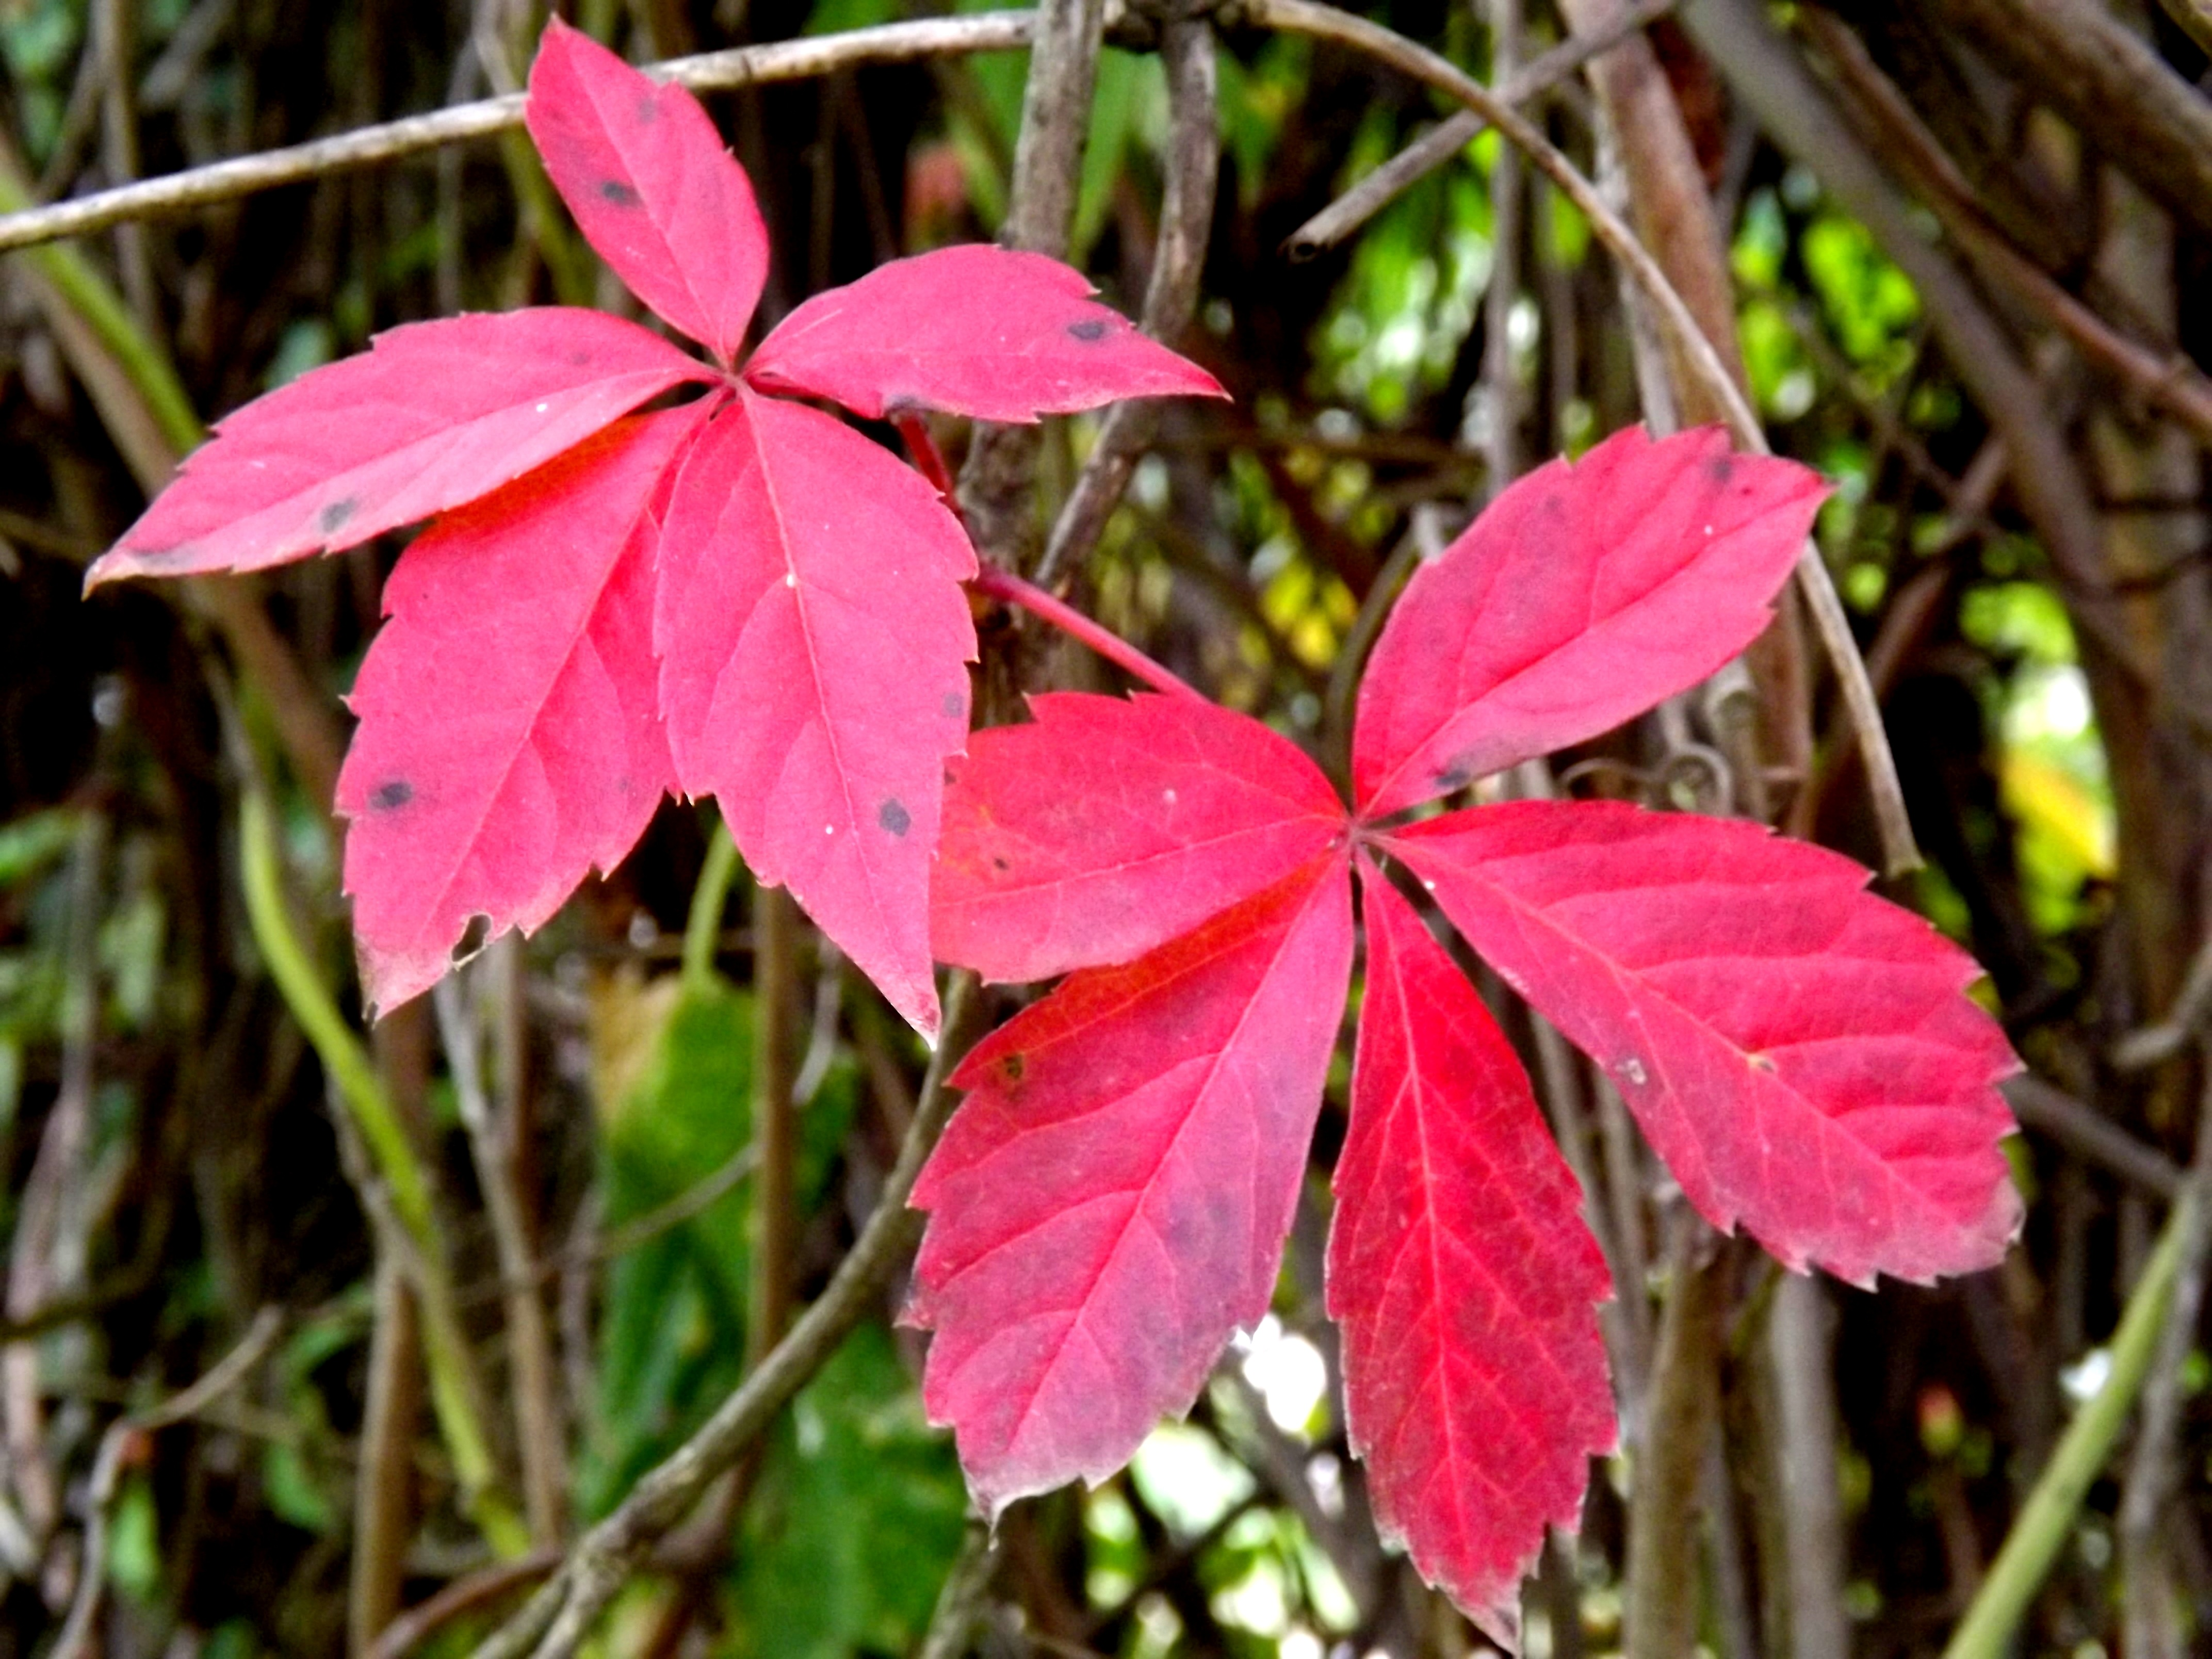 Pink Leaves, Wild, Pink, Nature, Leaf, HQ Photo